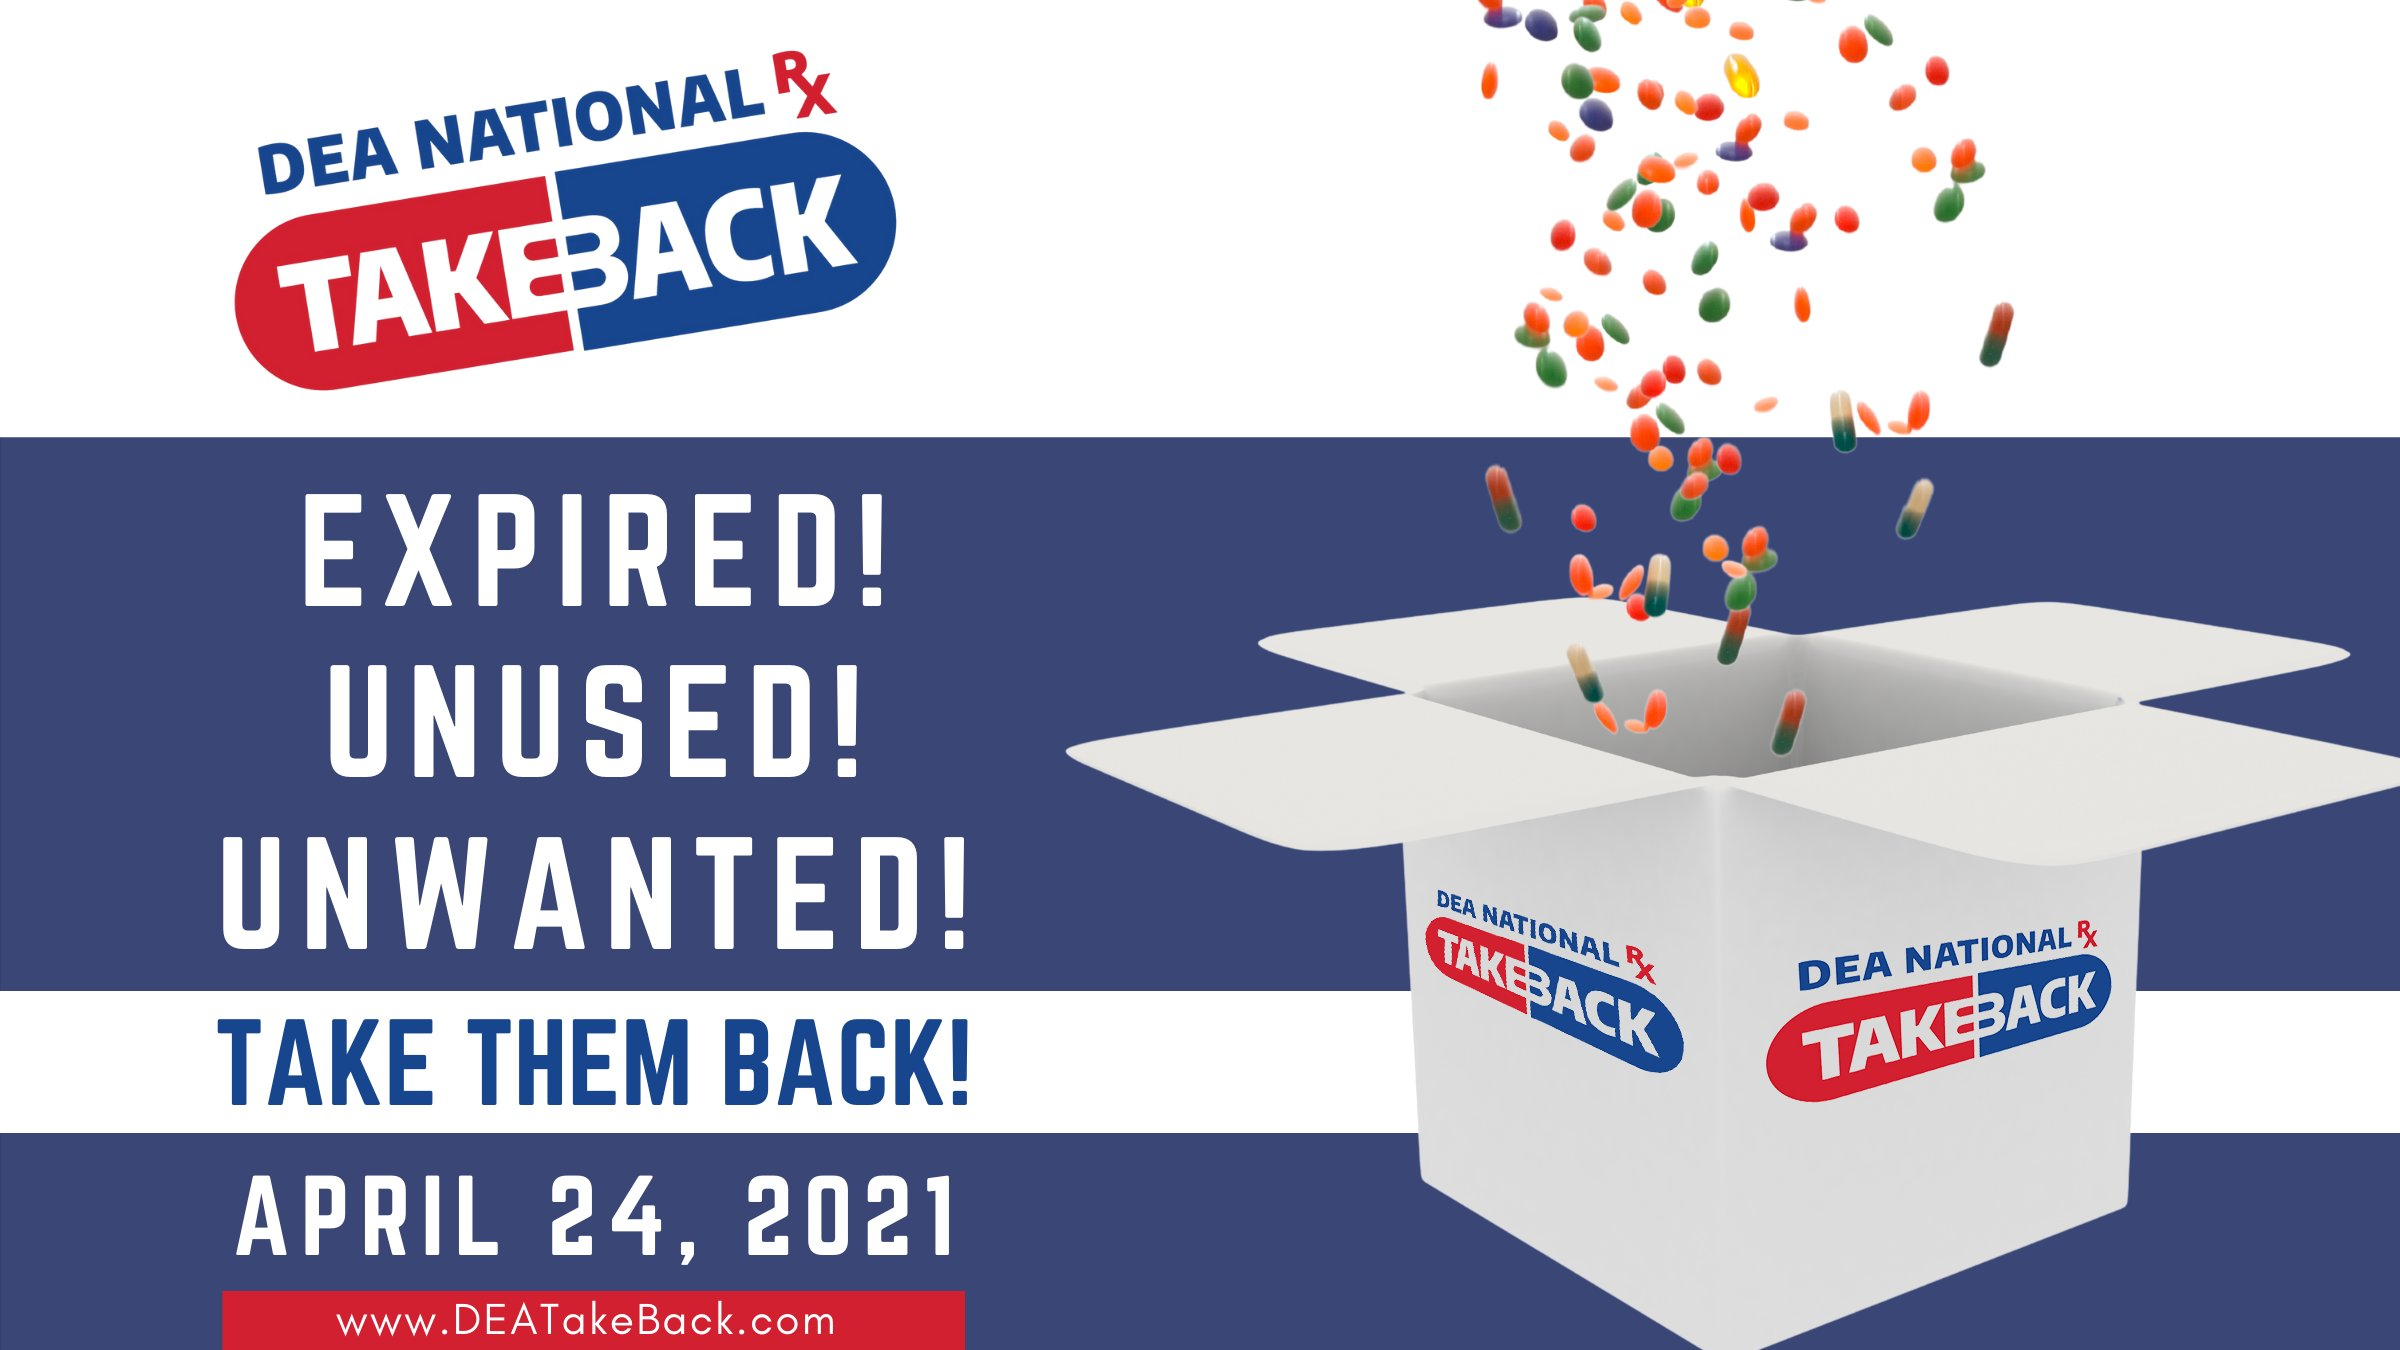 Take Back Day is on April 24, 2021